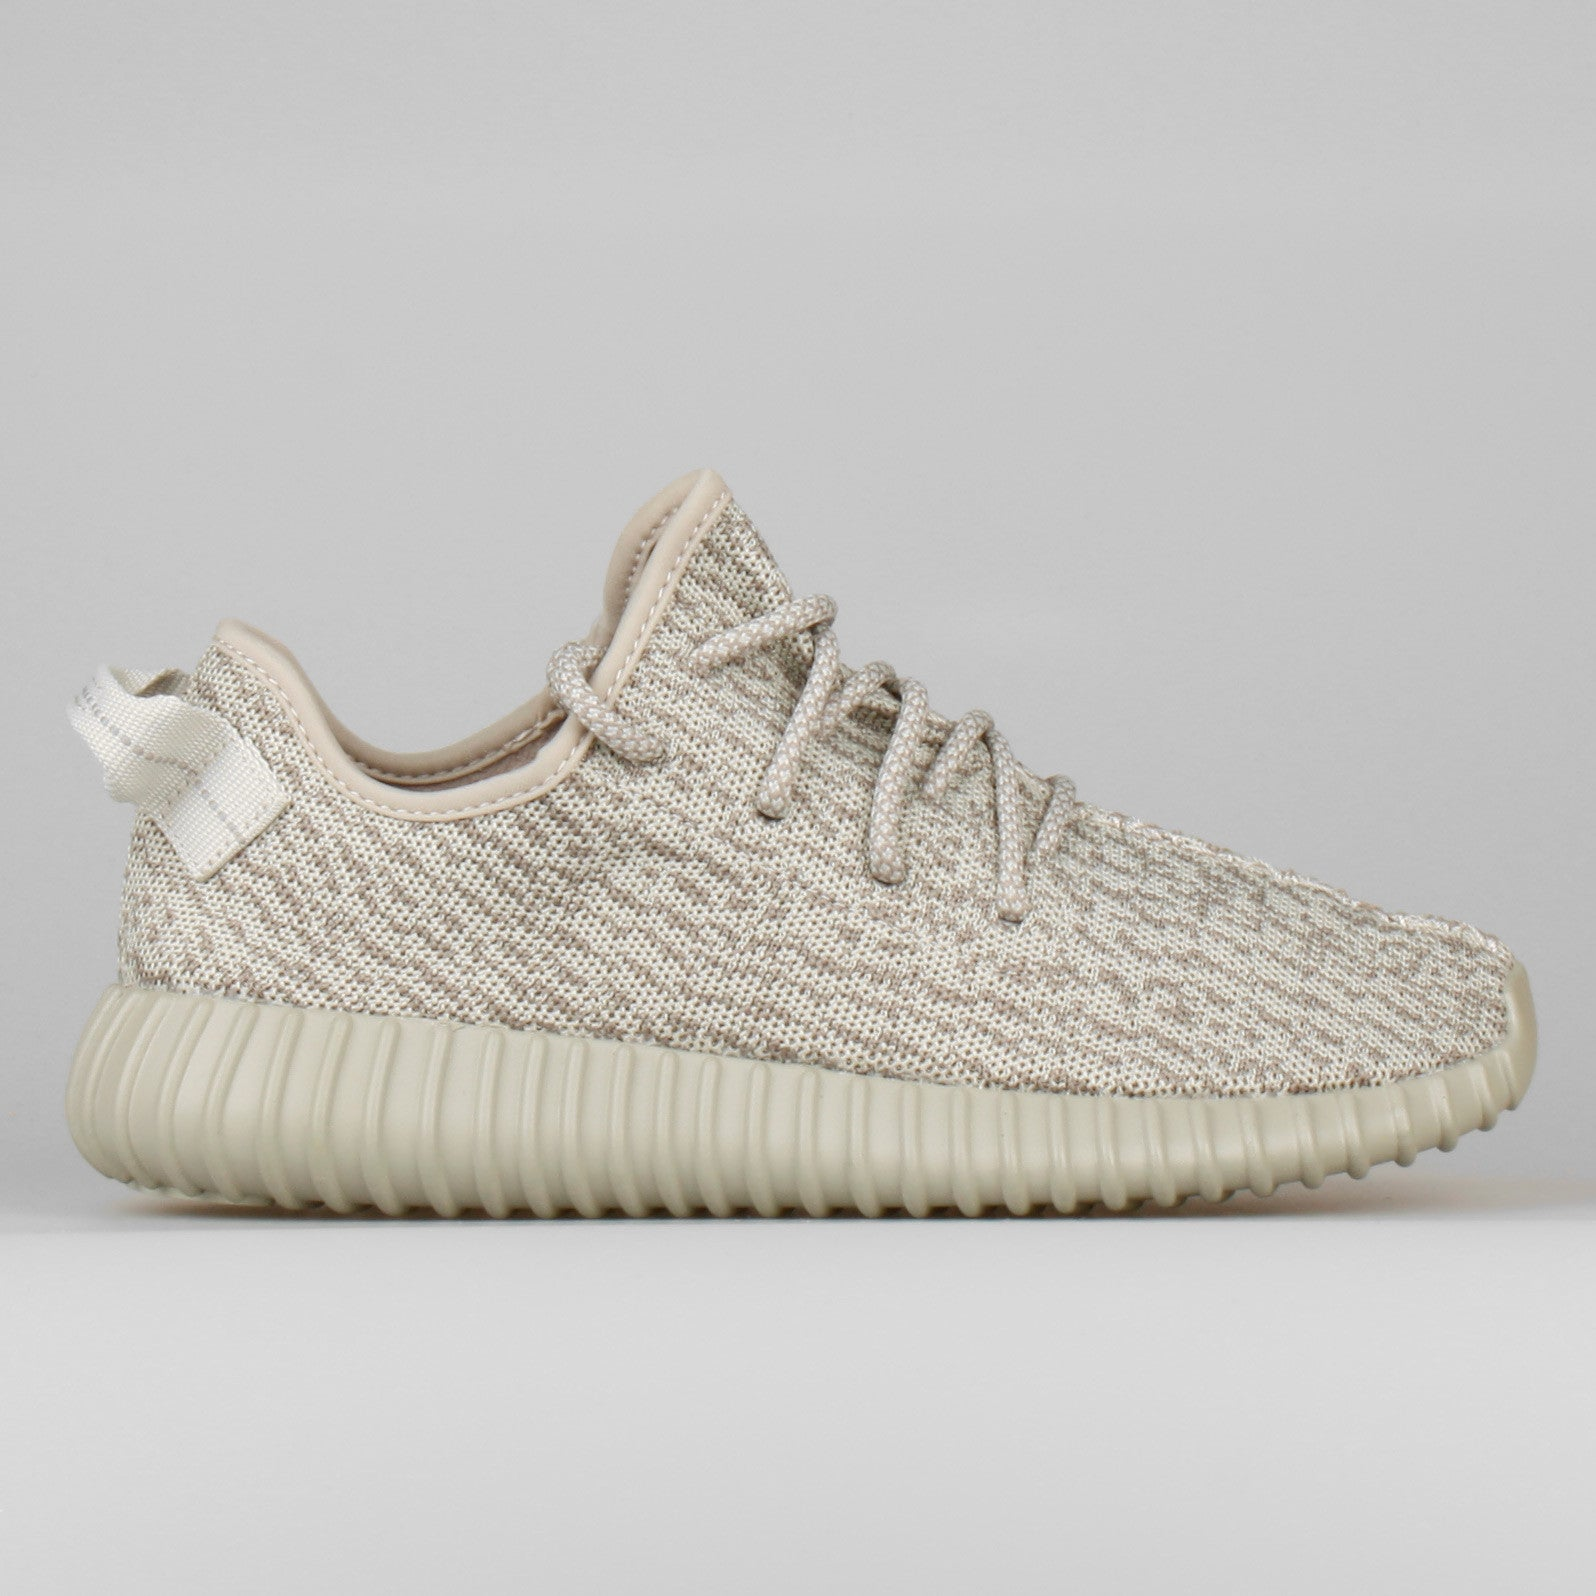 Adidas Yeezy 350 Boost 'Oxford Tan AQ 2661, Kanye West Shoes